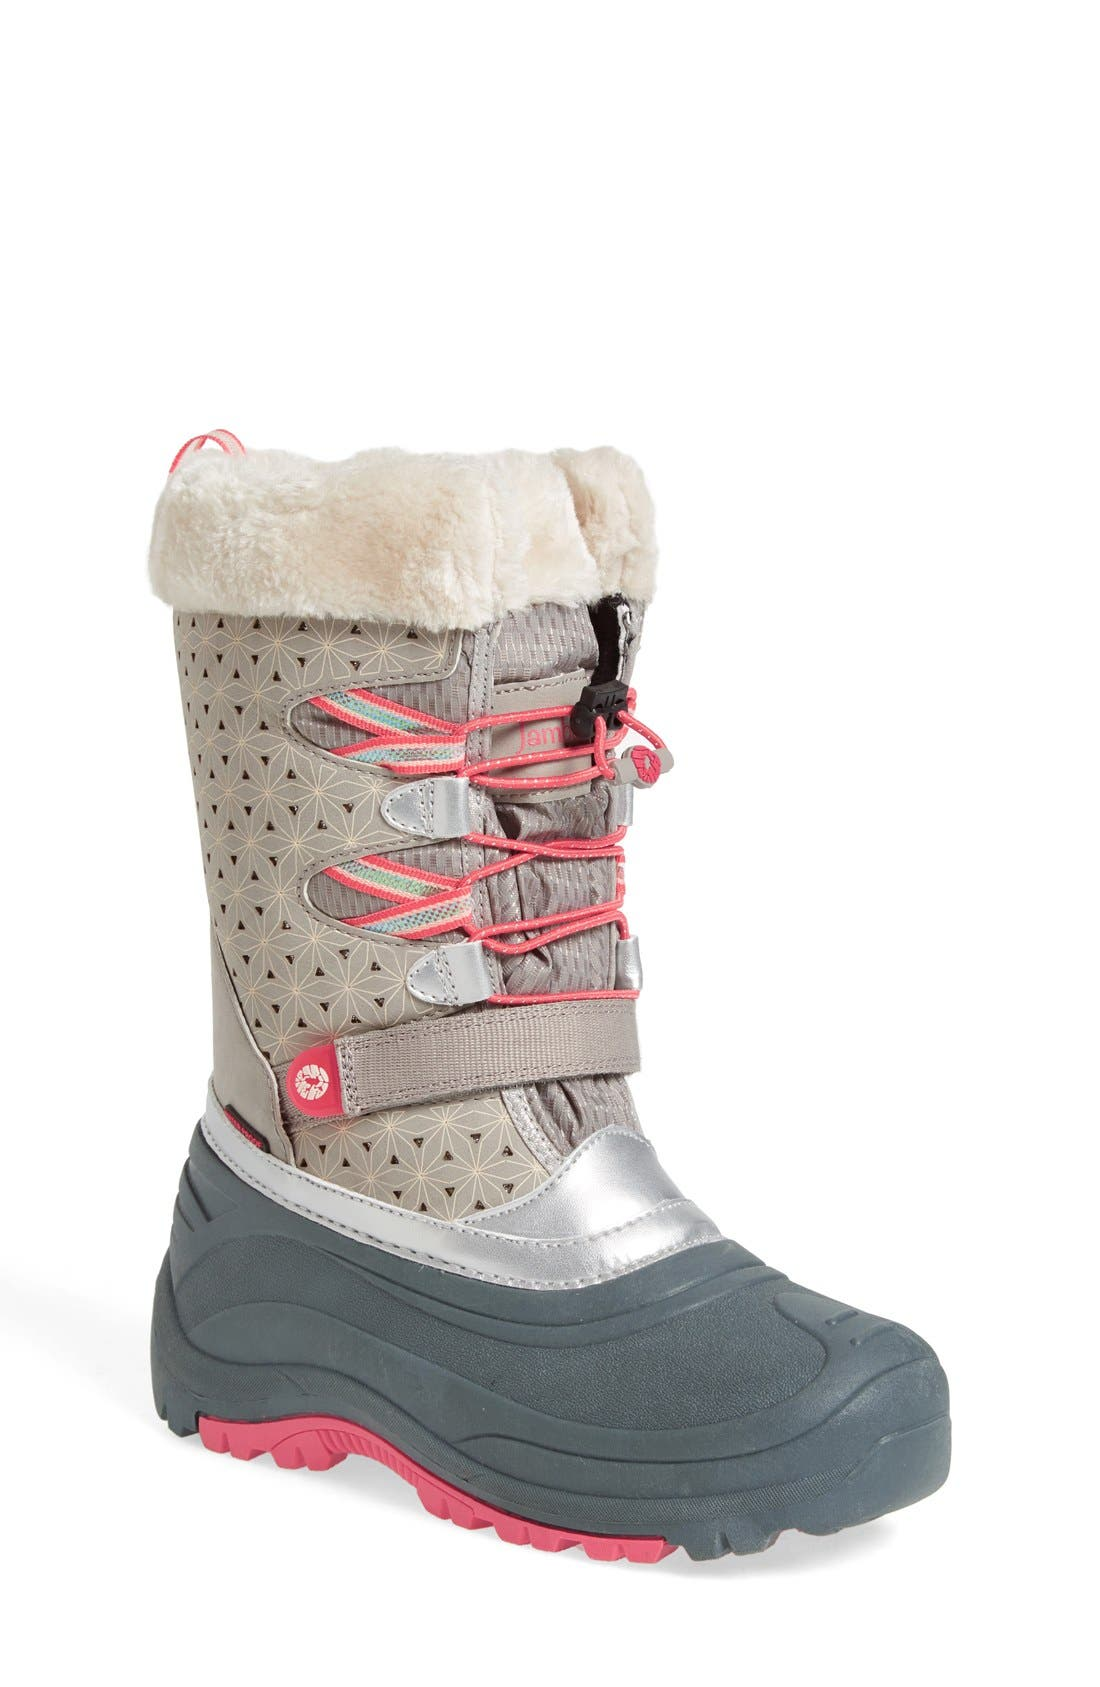 JAMBU 'Venom' Waterproof Insulated Snow Boot